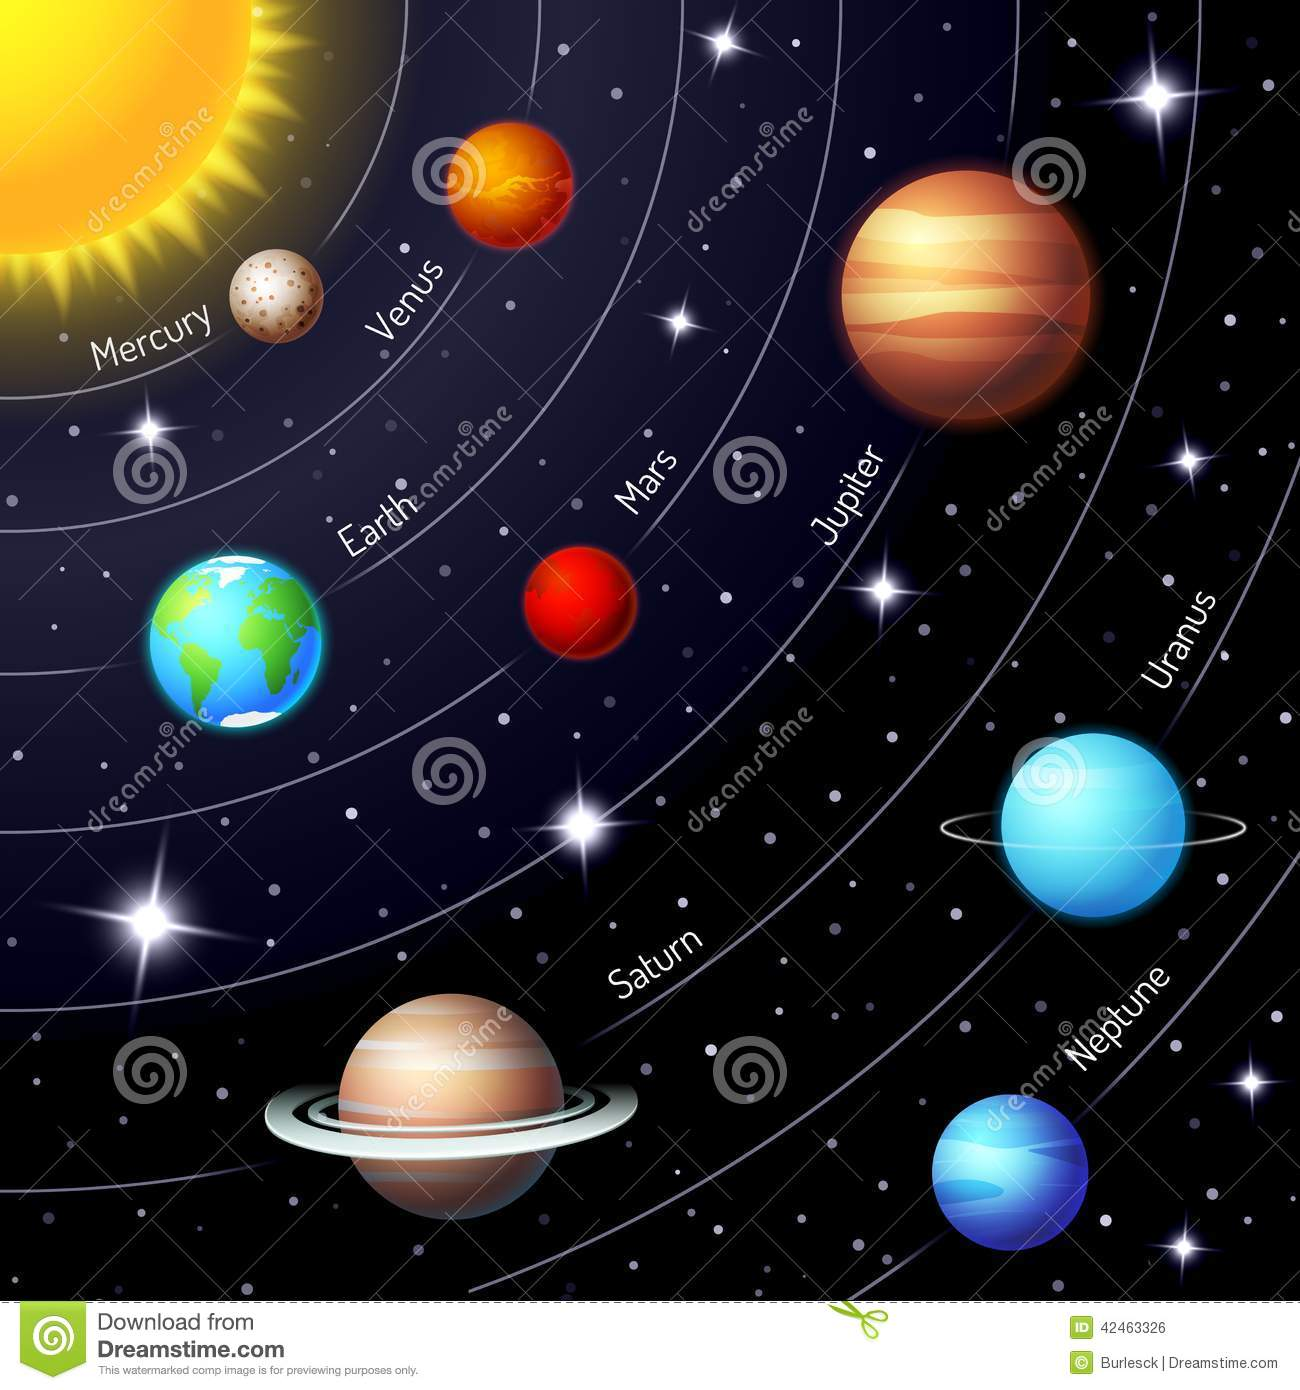 The Planets Today : A live view of the solar system